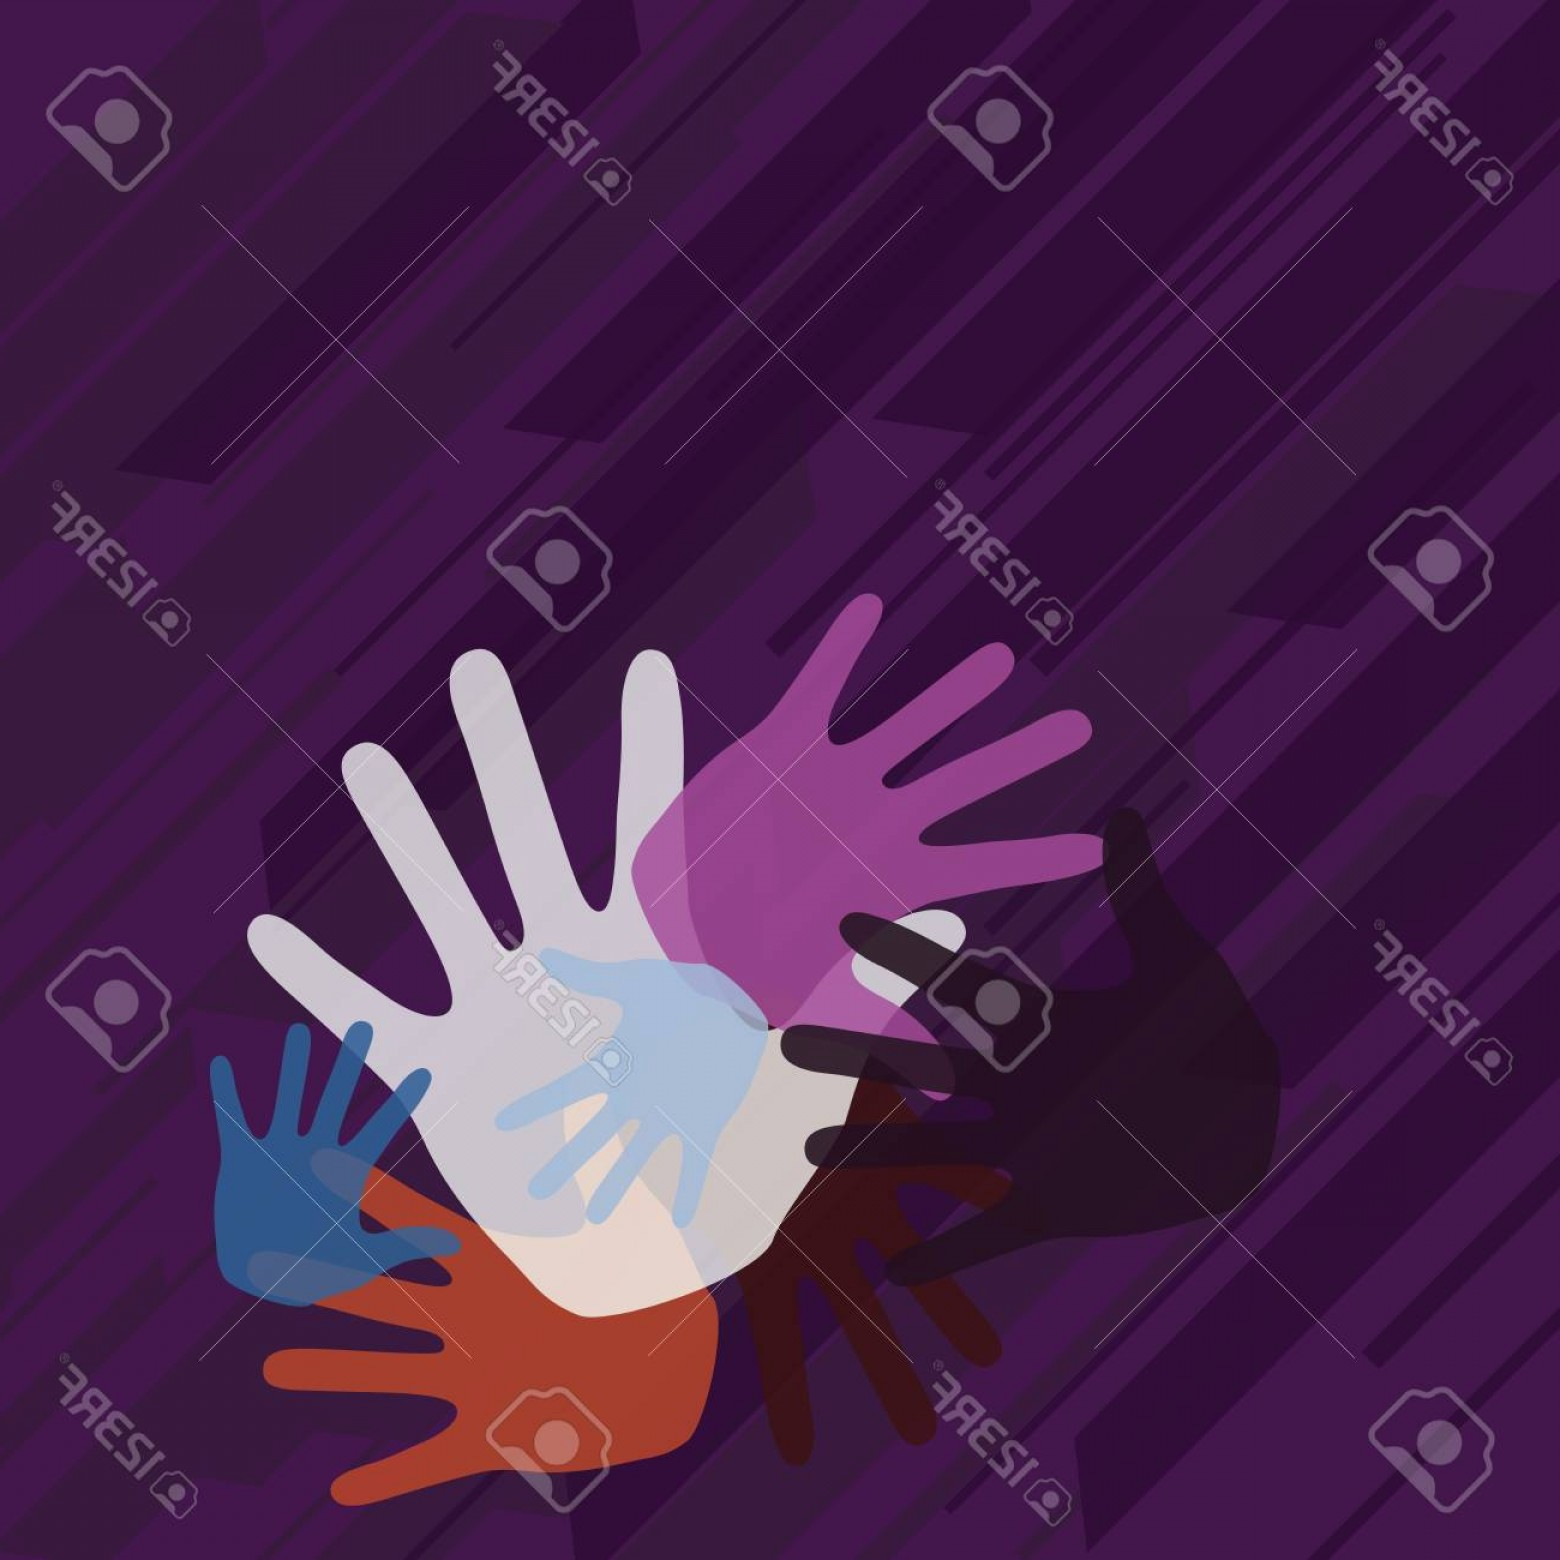 Vector Group Of Hands Overlapped: Photostock Vector Color Hand Marks Of Different Sizes Overlapping For Teamwork And Creativity Design Business Empty Co